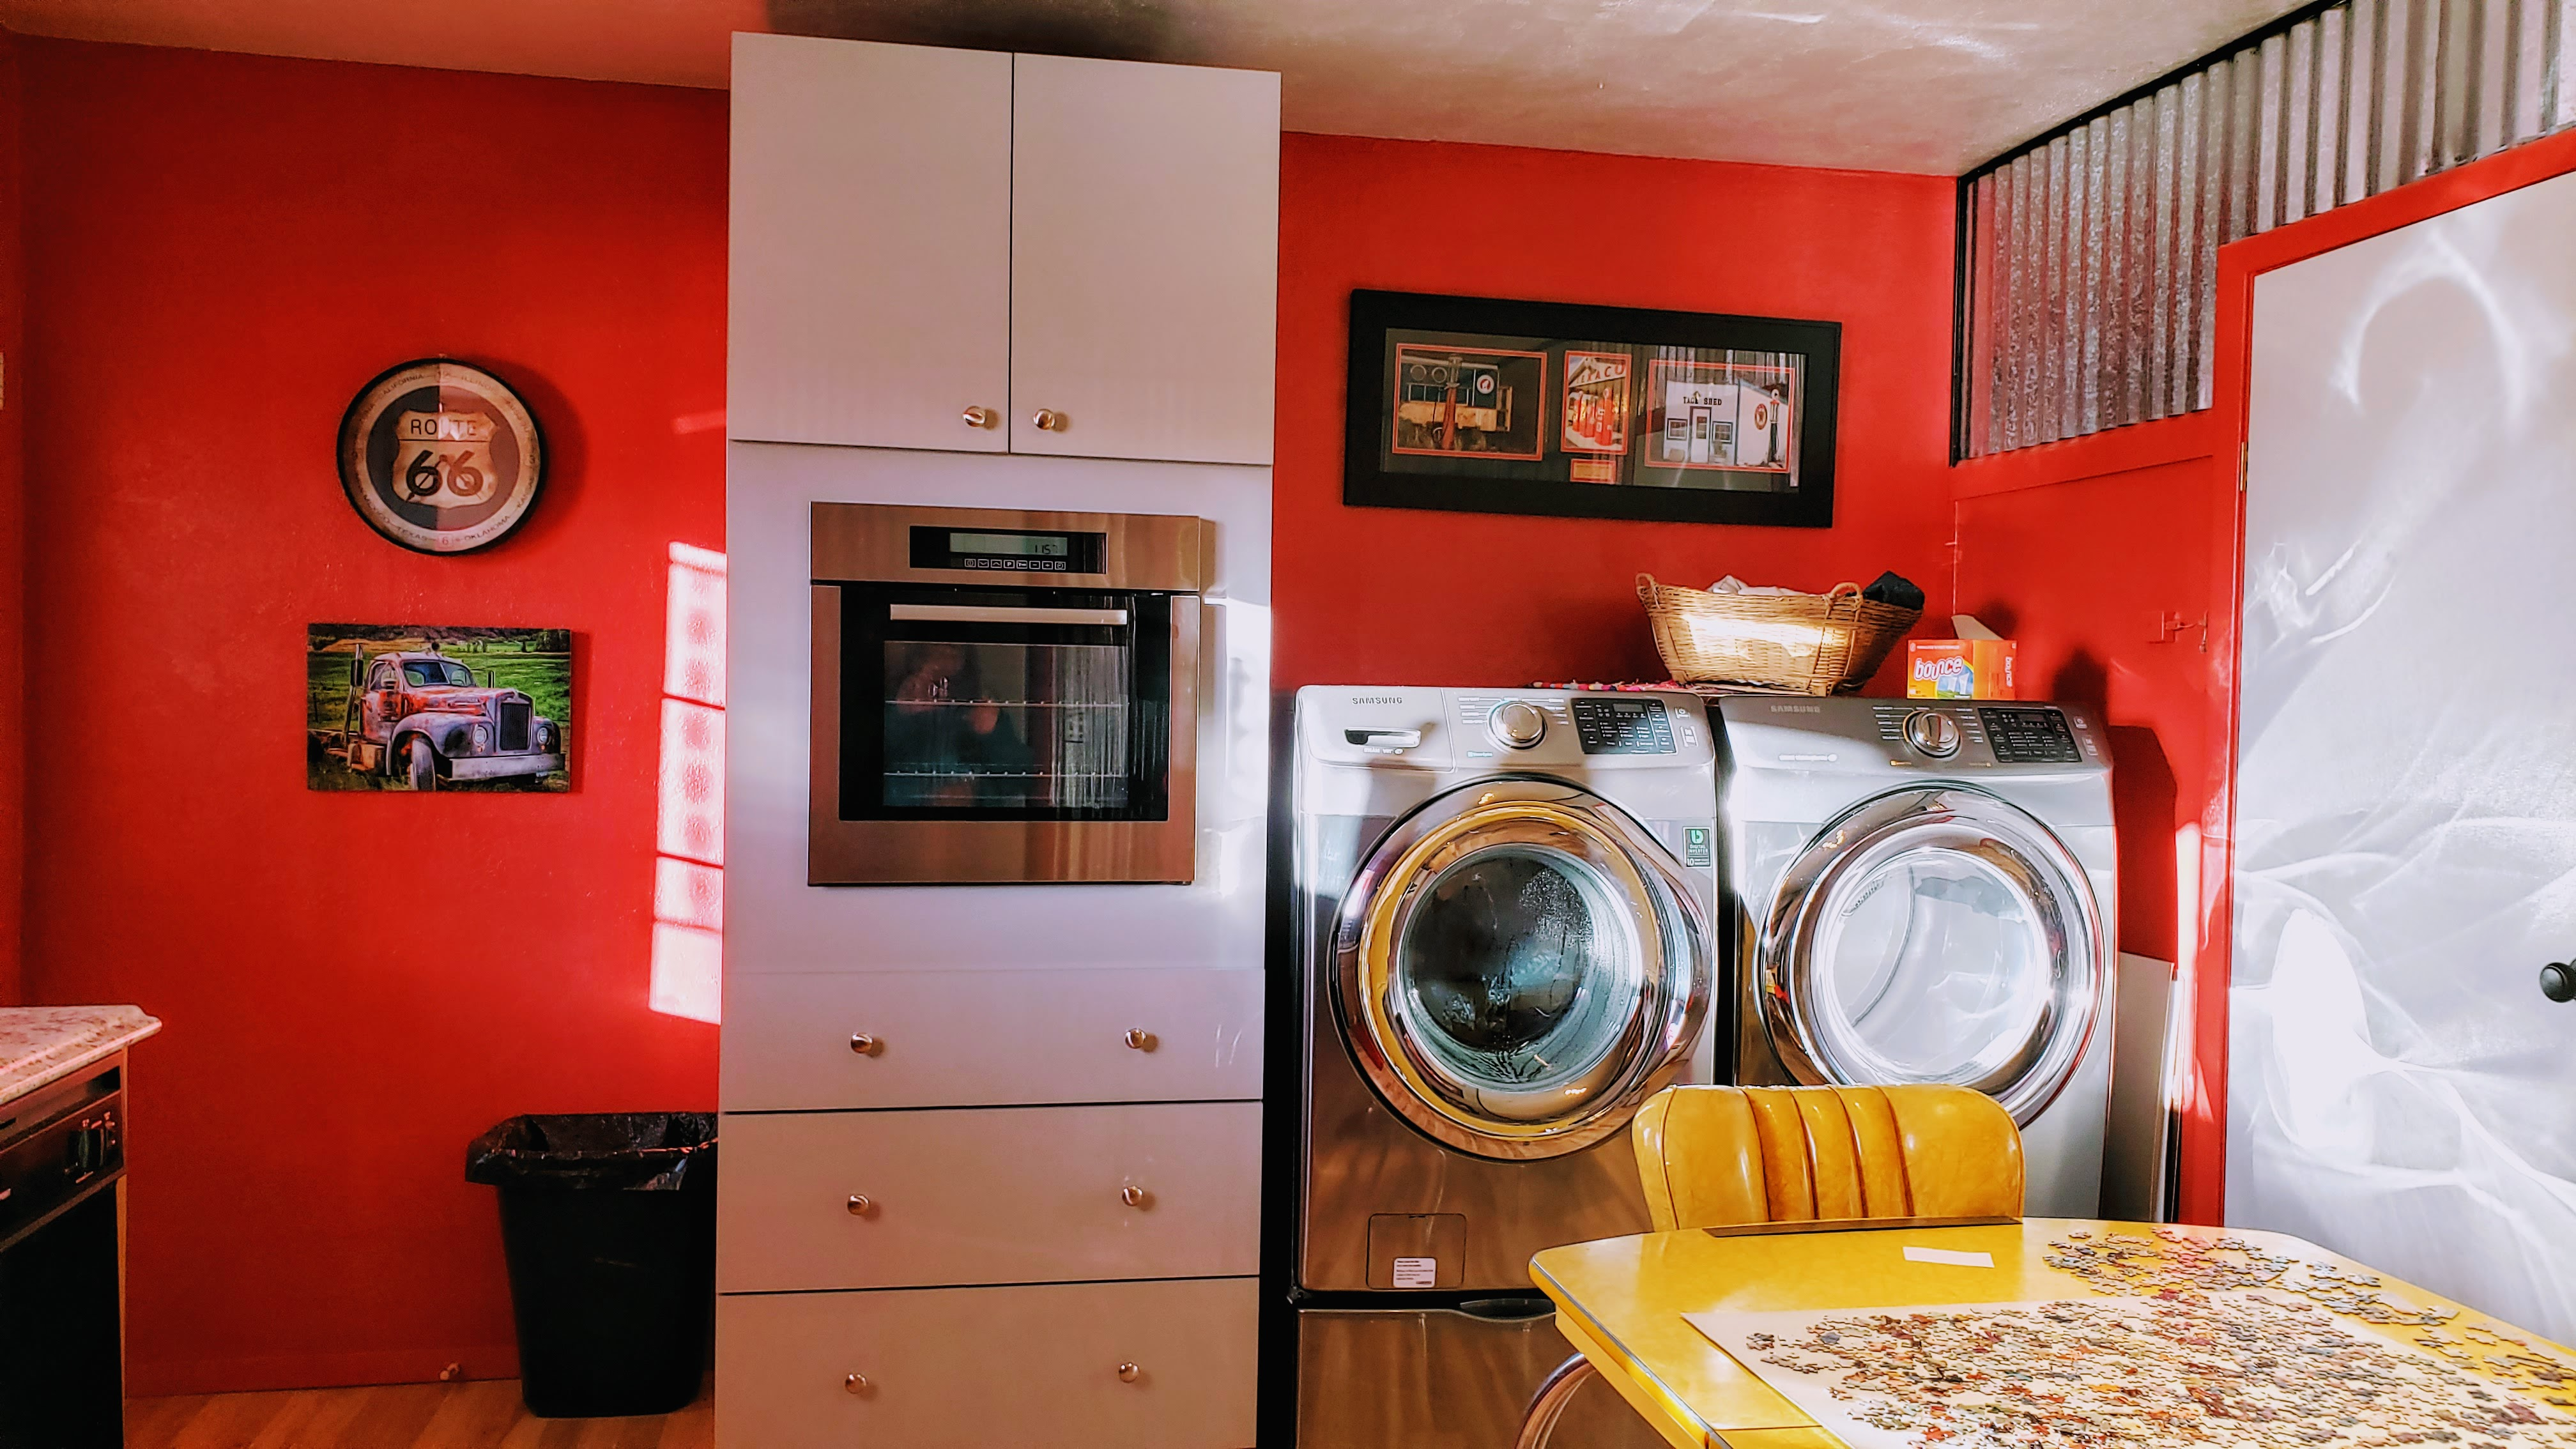 WASHER & DRYER INCLUDED